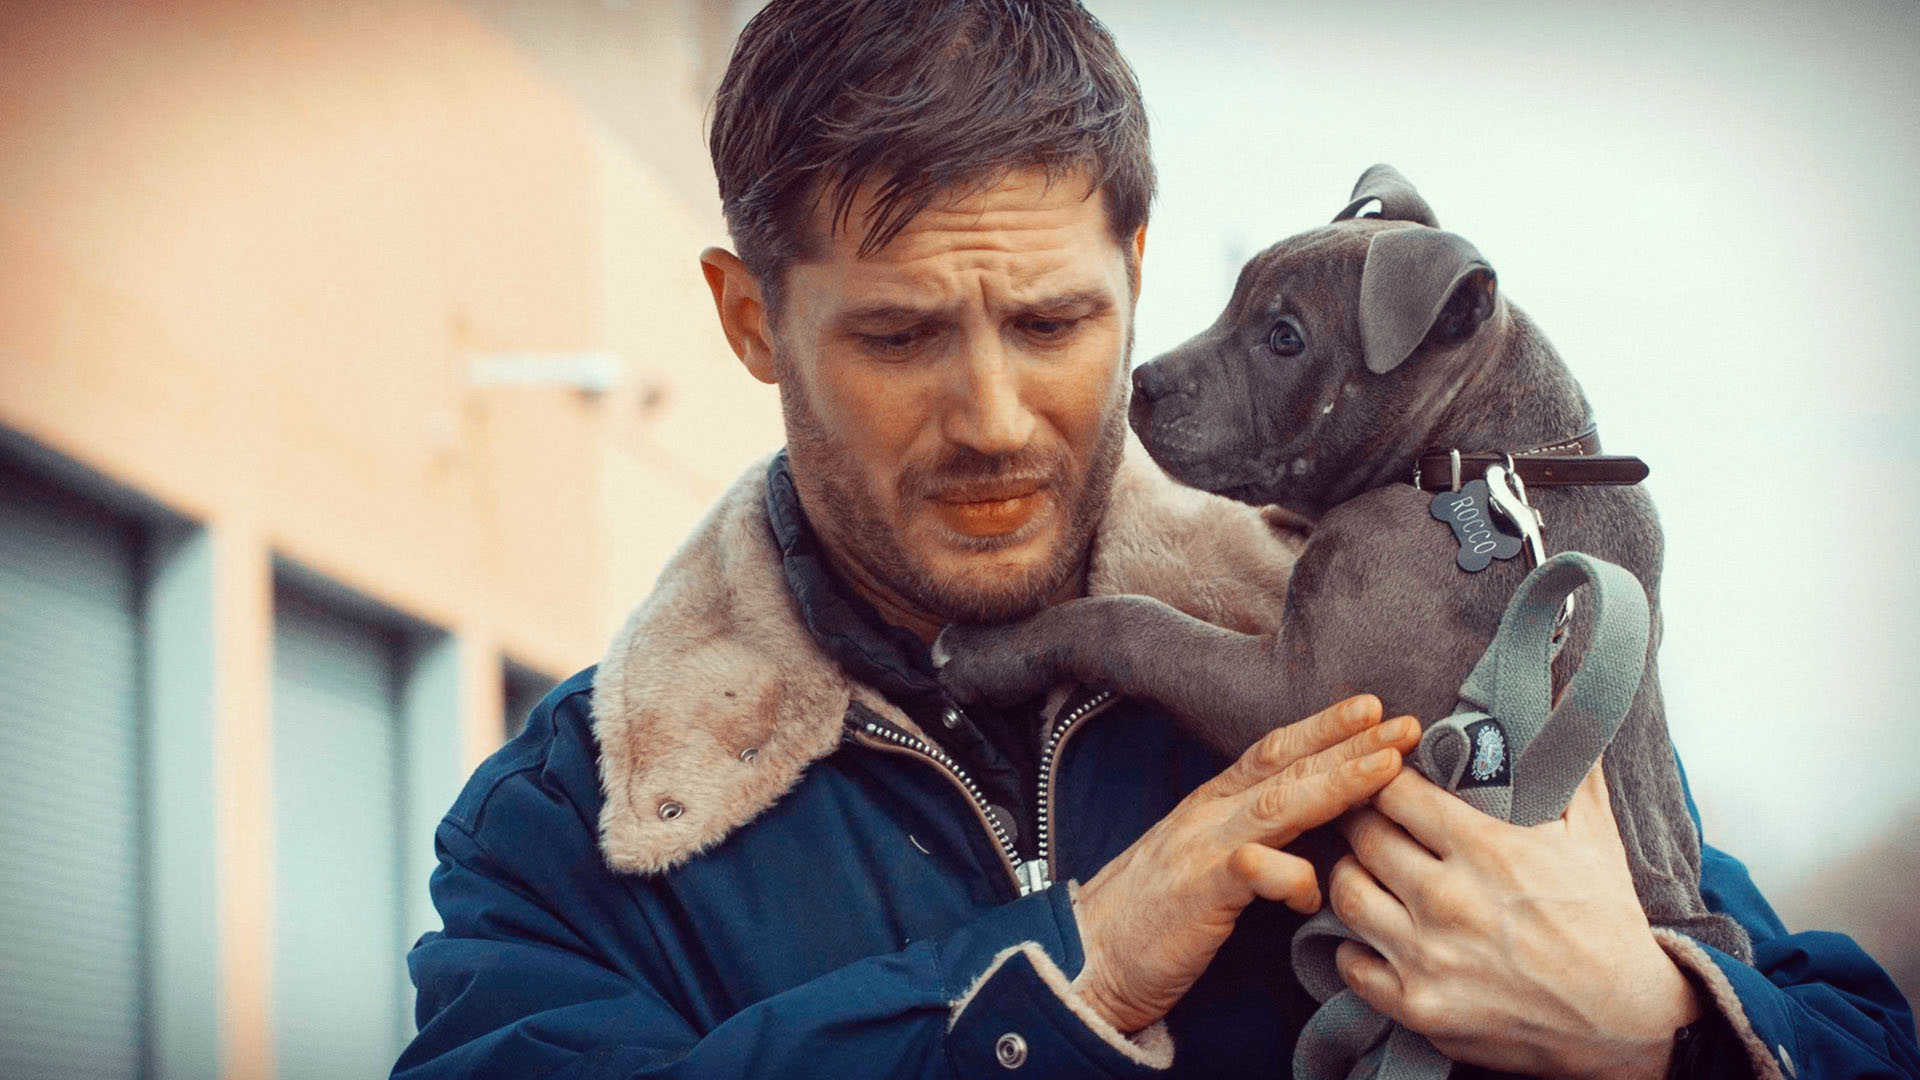 1920x1080 Tom Hardy Wallpapers High Resolution And Quality Download